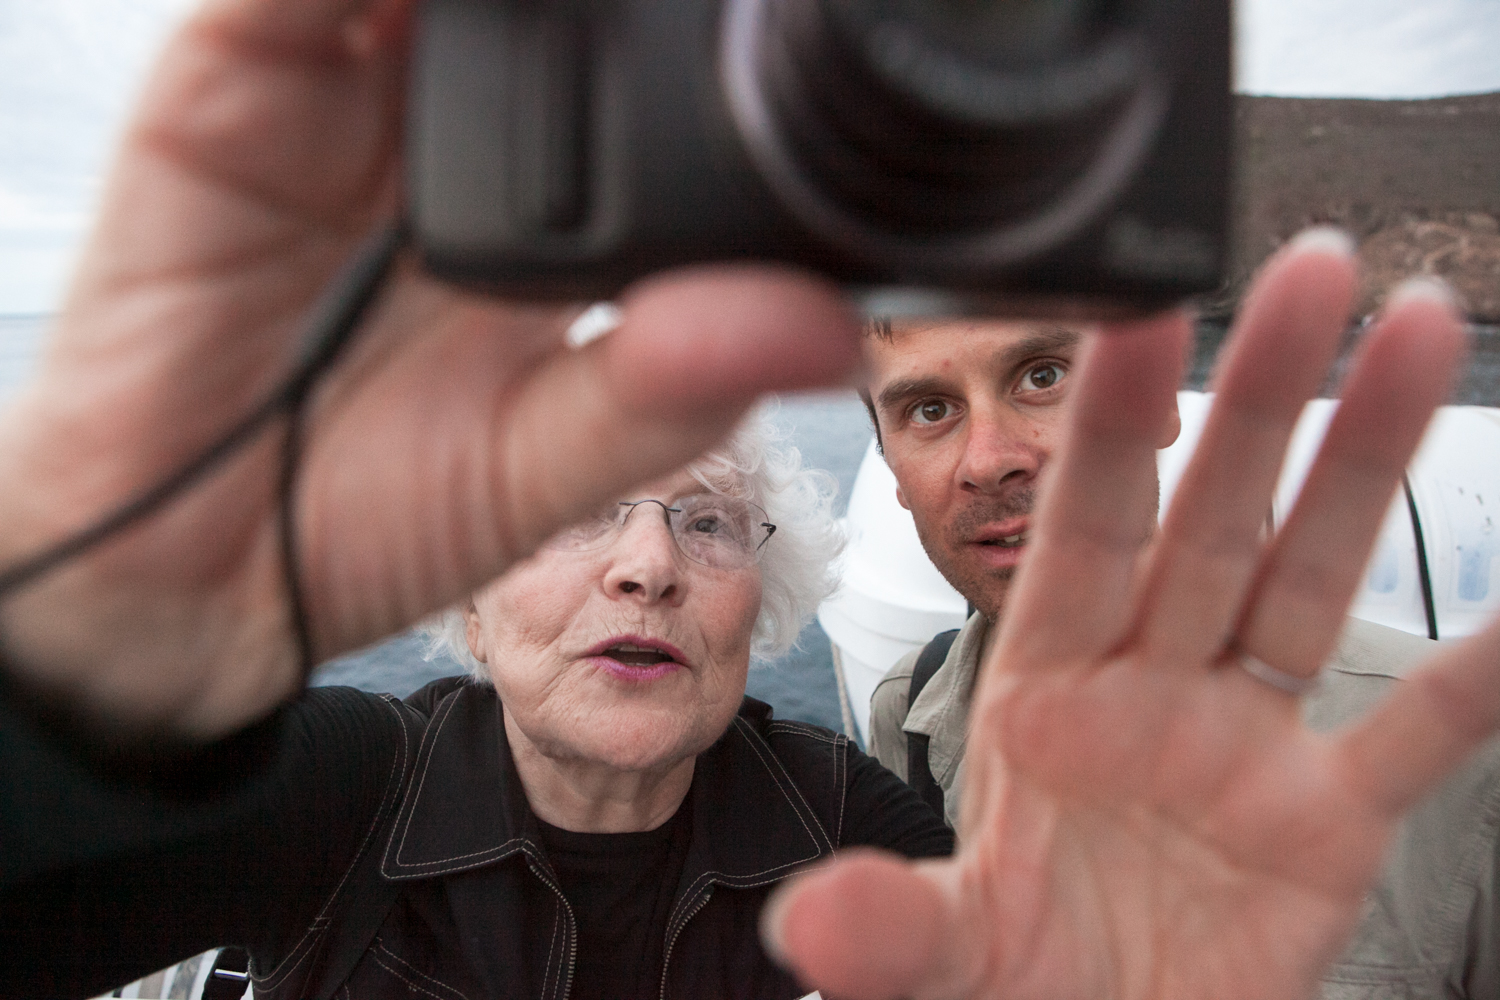 On an expedition vessel in the Galapagos Islands, two passengers view images on the back of a camera.